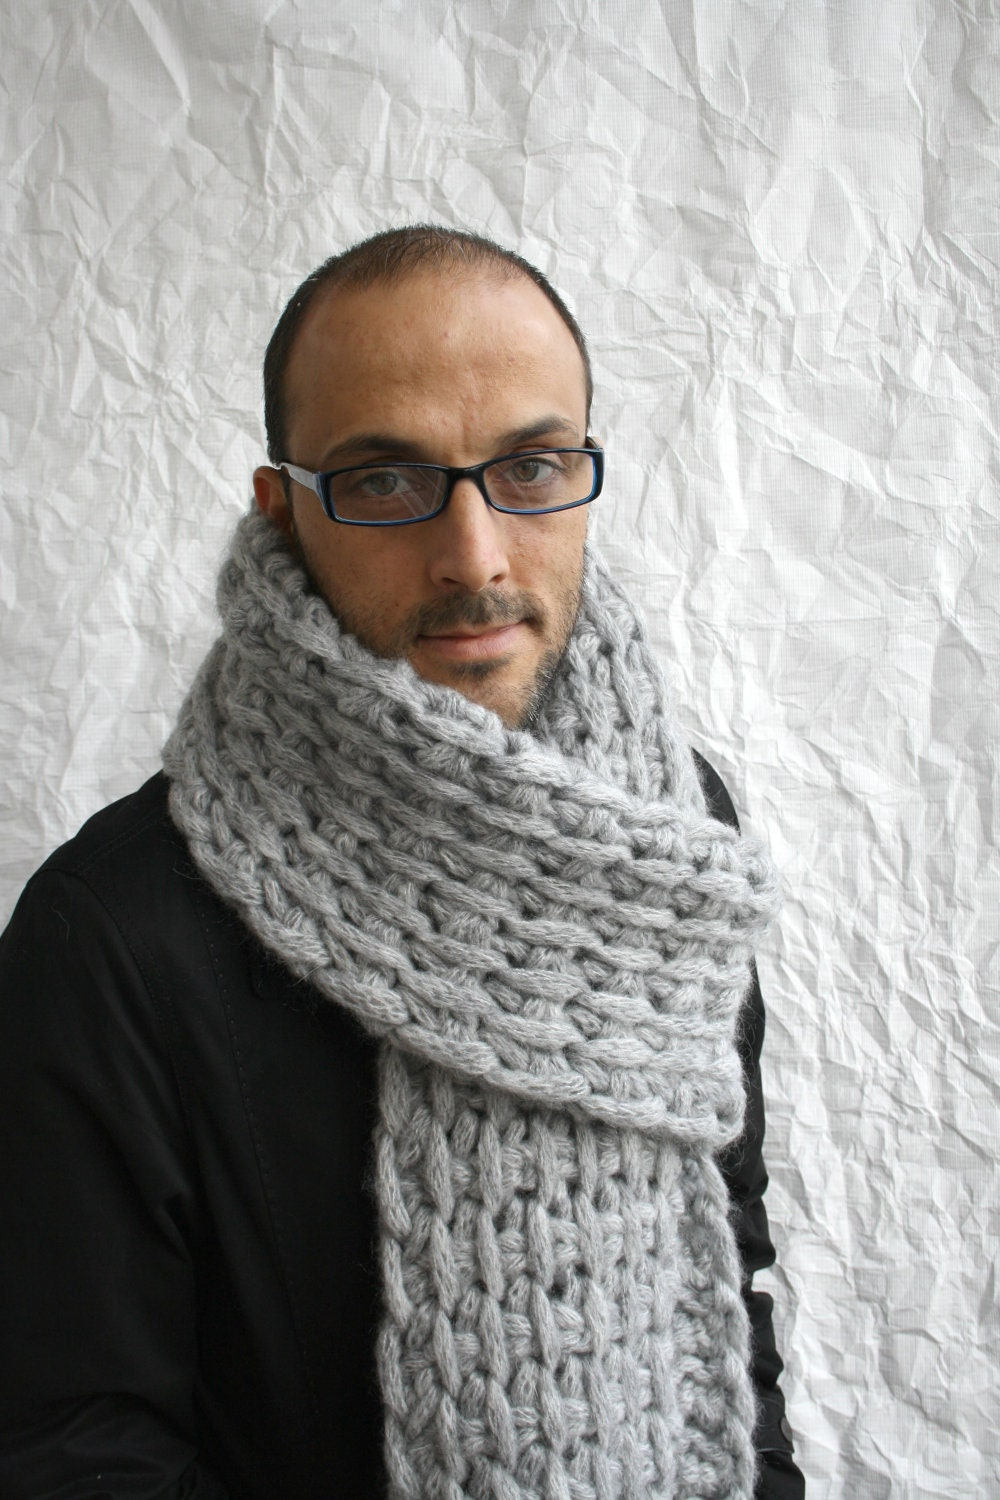 Knitting Patterns For Big Scarves : Gray Wool Big Extra Long Scarf Perfect Gift Under 75 For Men